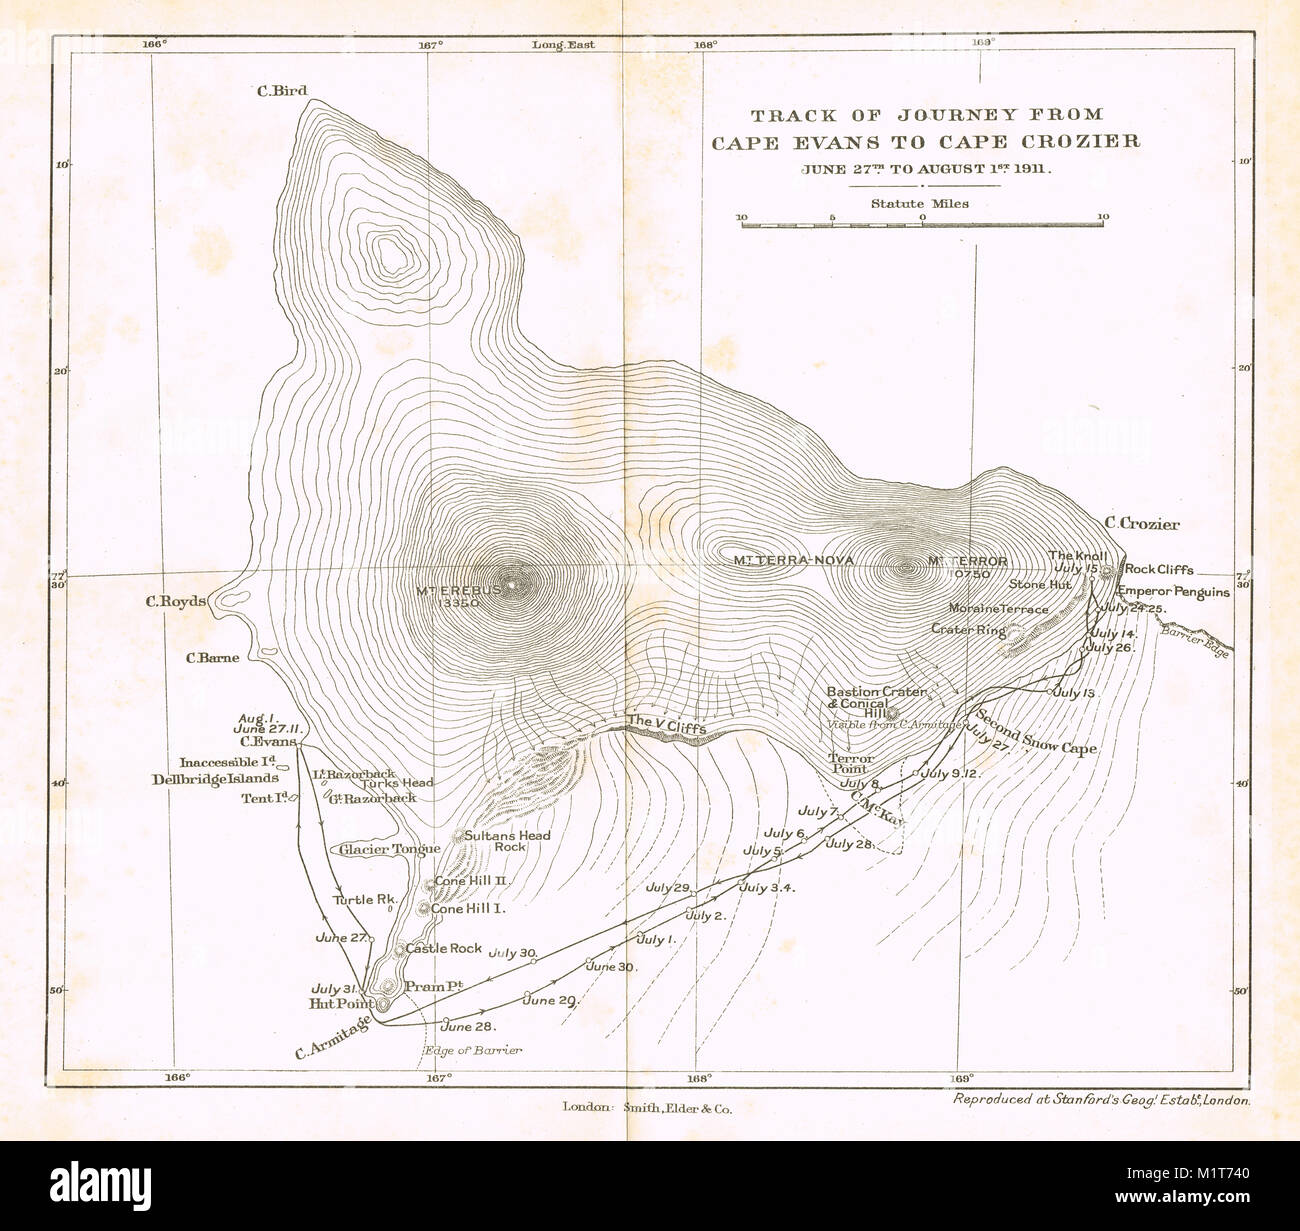 Track of journey from Cape Evans to Cape Crozier, Austral Winter 1911, Scott's final expedition - Stock Image